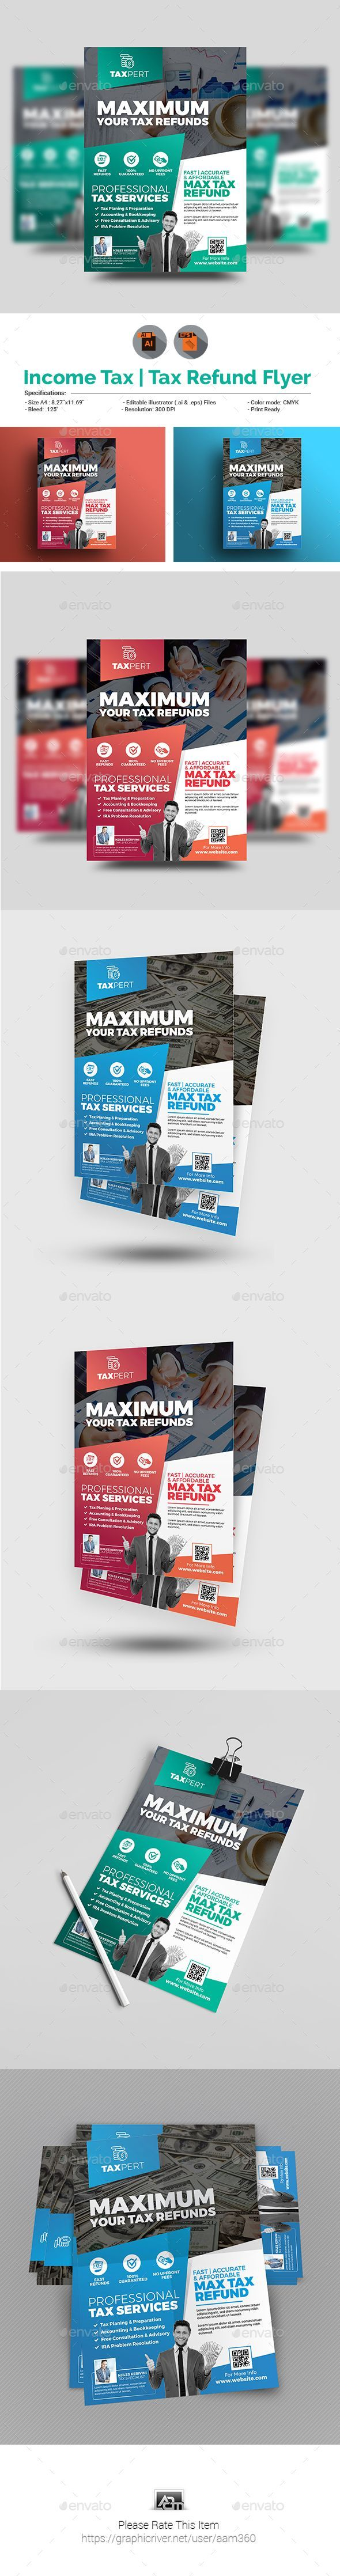 Income Tax/Tax Refund Flyer Template | Flyer template, Template and ...